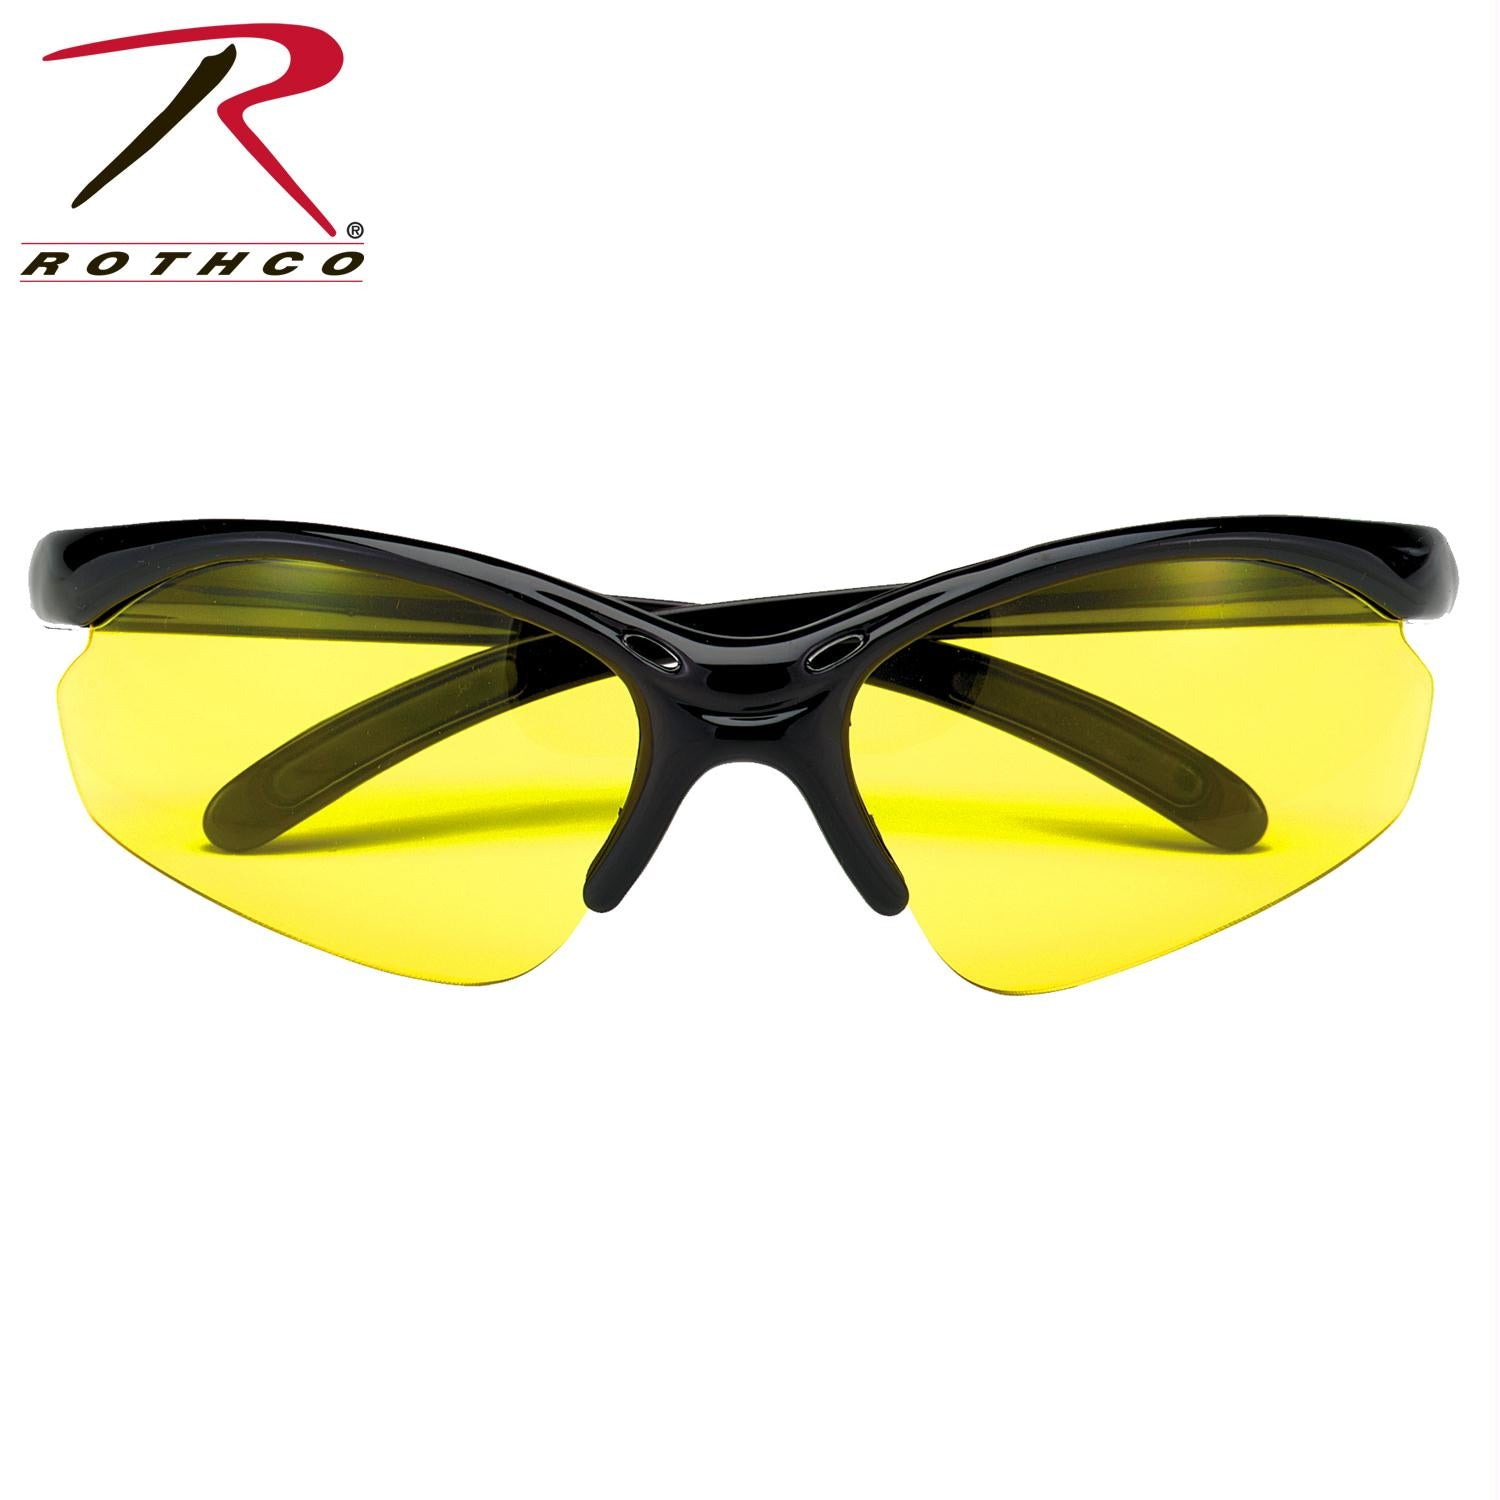 Rothco Dual Polycarbonate Lens Sports Glasses